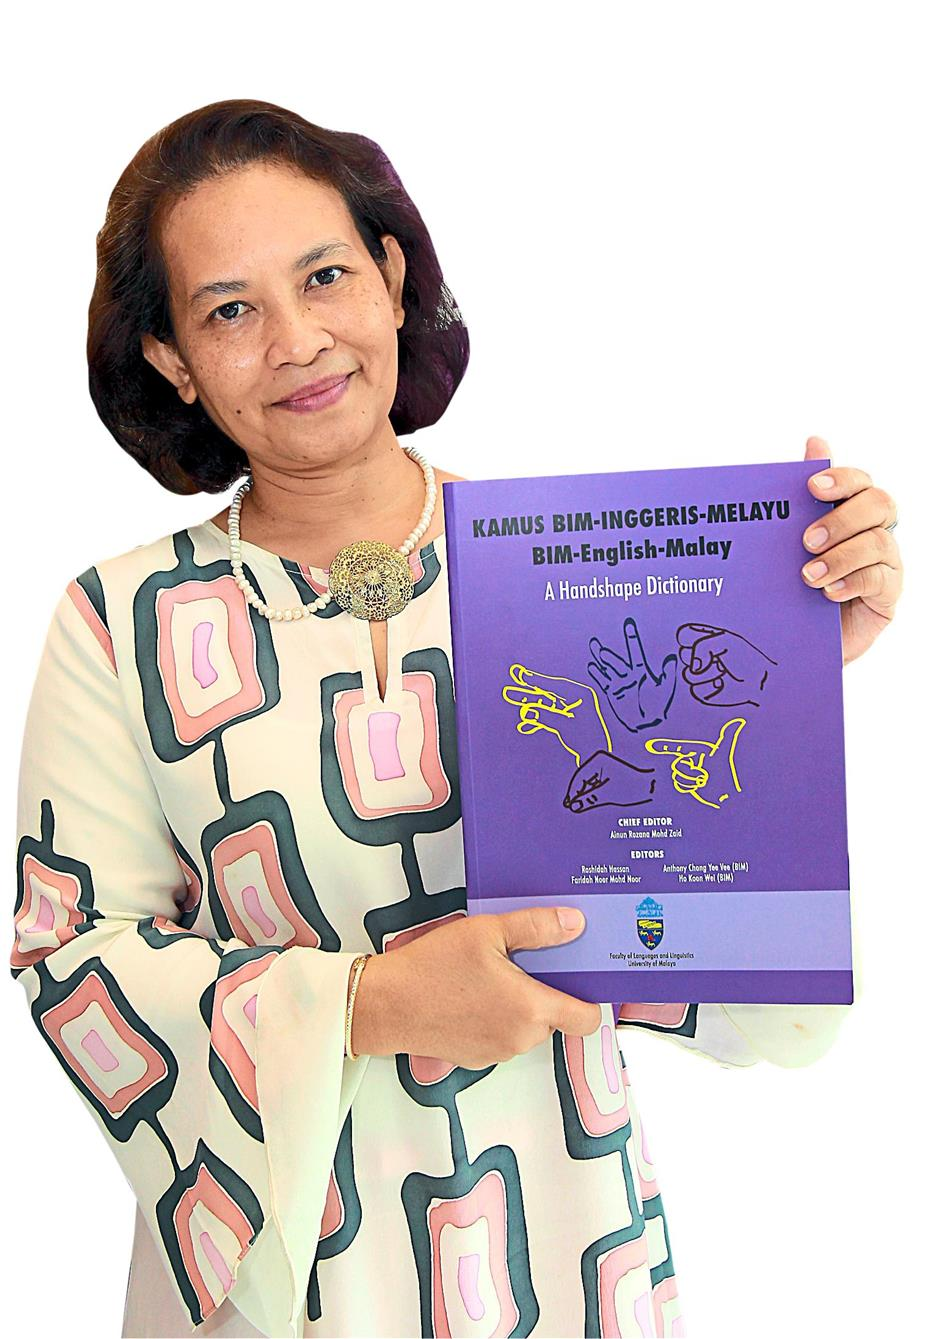 Universiti Malaya's Faculty of Language and Linguistics senior lecturer Ainun Rozana Ainun Mohd Zaid holds up a copy of the BIM-Malay-English Hanshape Dictionary, during its launch at the university in Kuala Lumpur. -Art Chen / The Star. 17 July 2014.